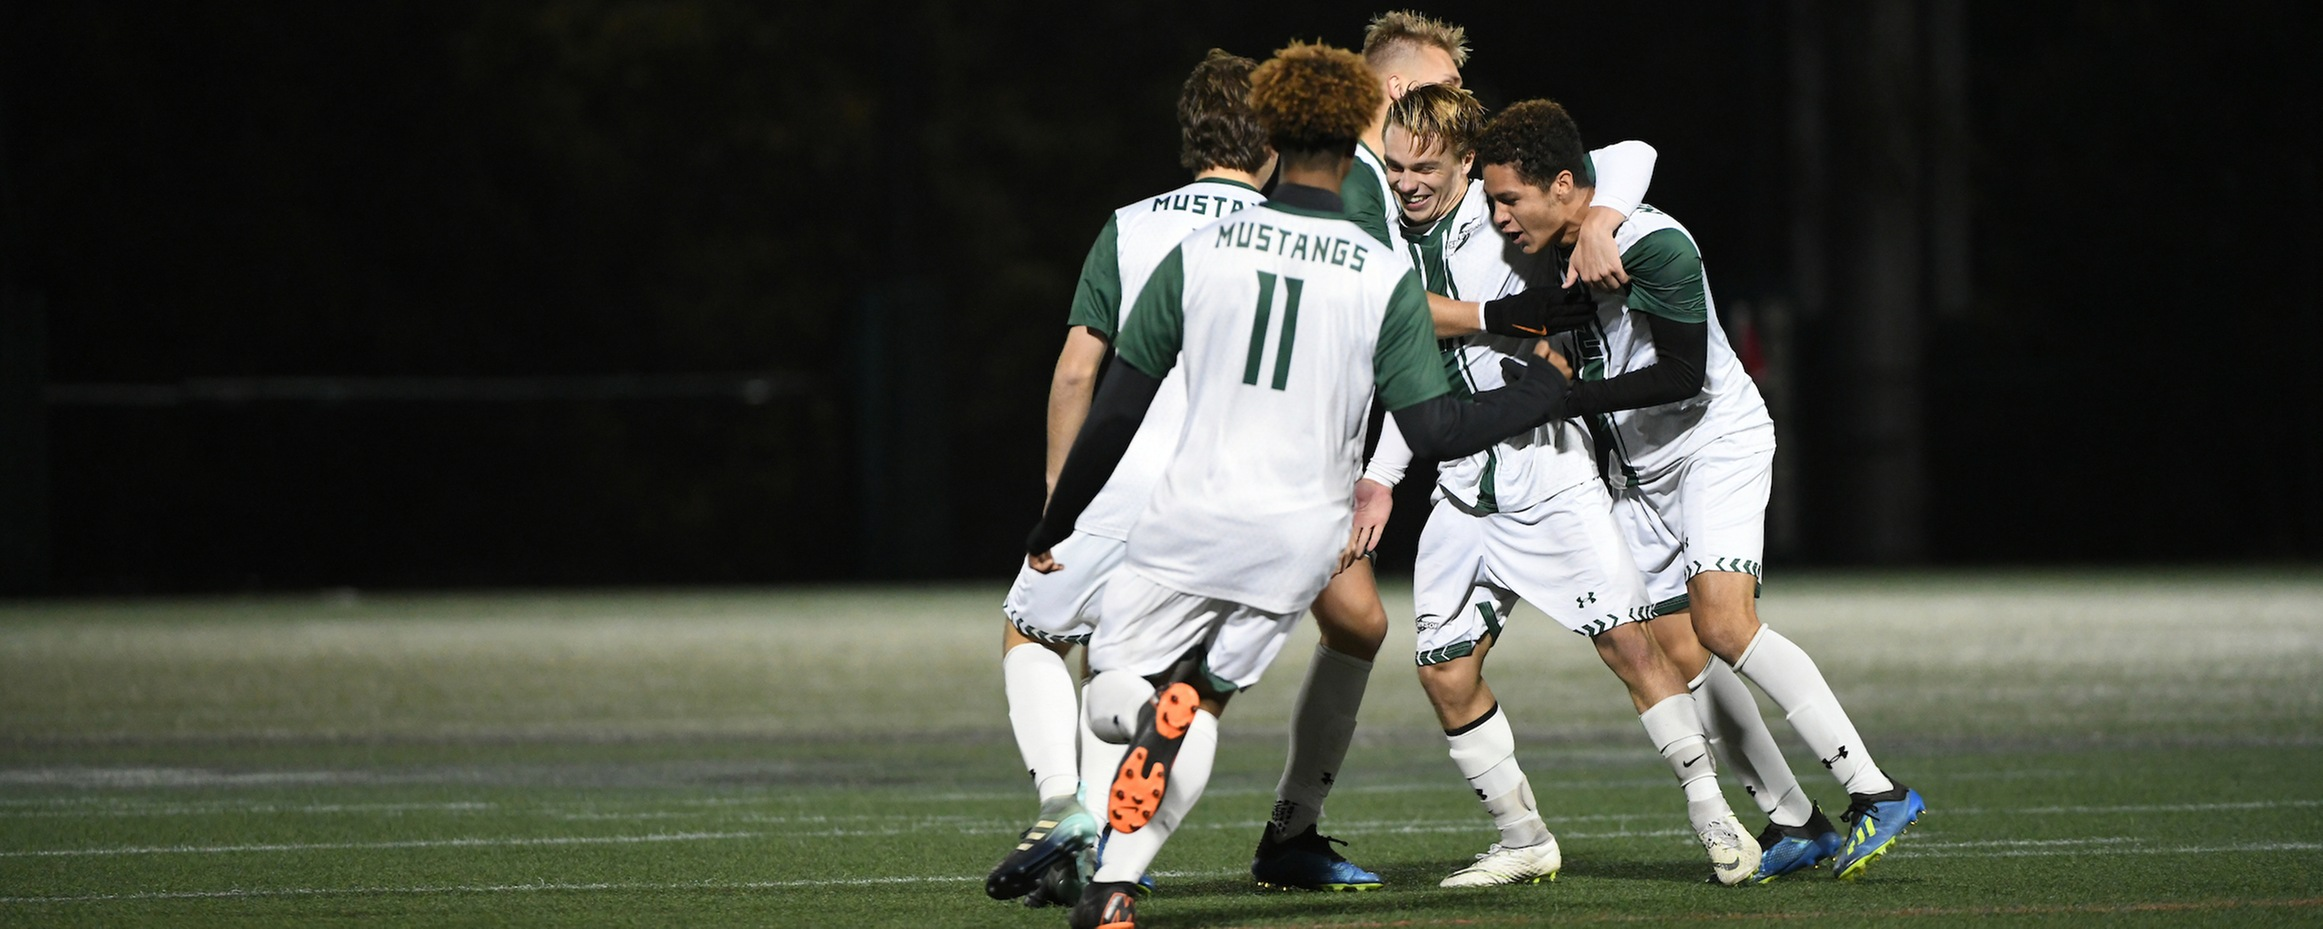 UPDATED SCHEDULE: Men's Soccer to Host ECAC First Rounds on Friday, Saturday